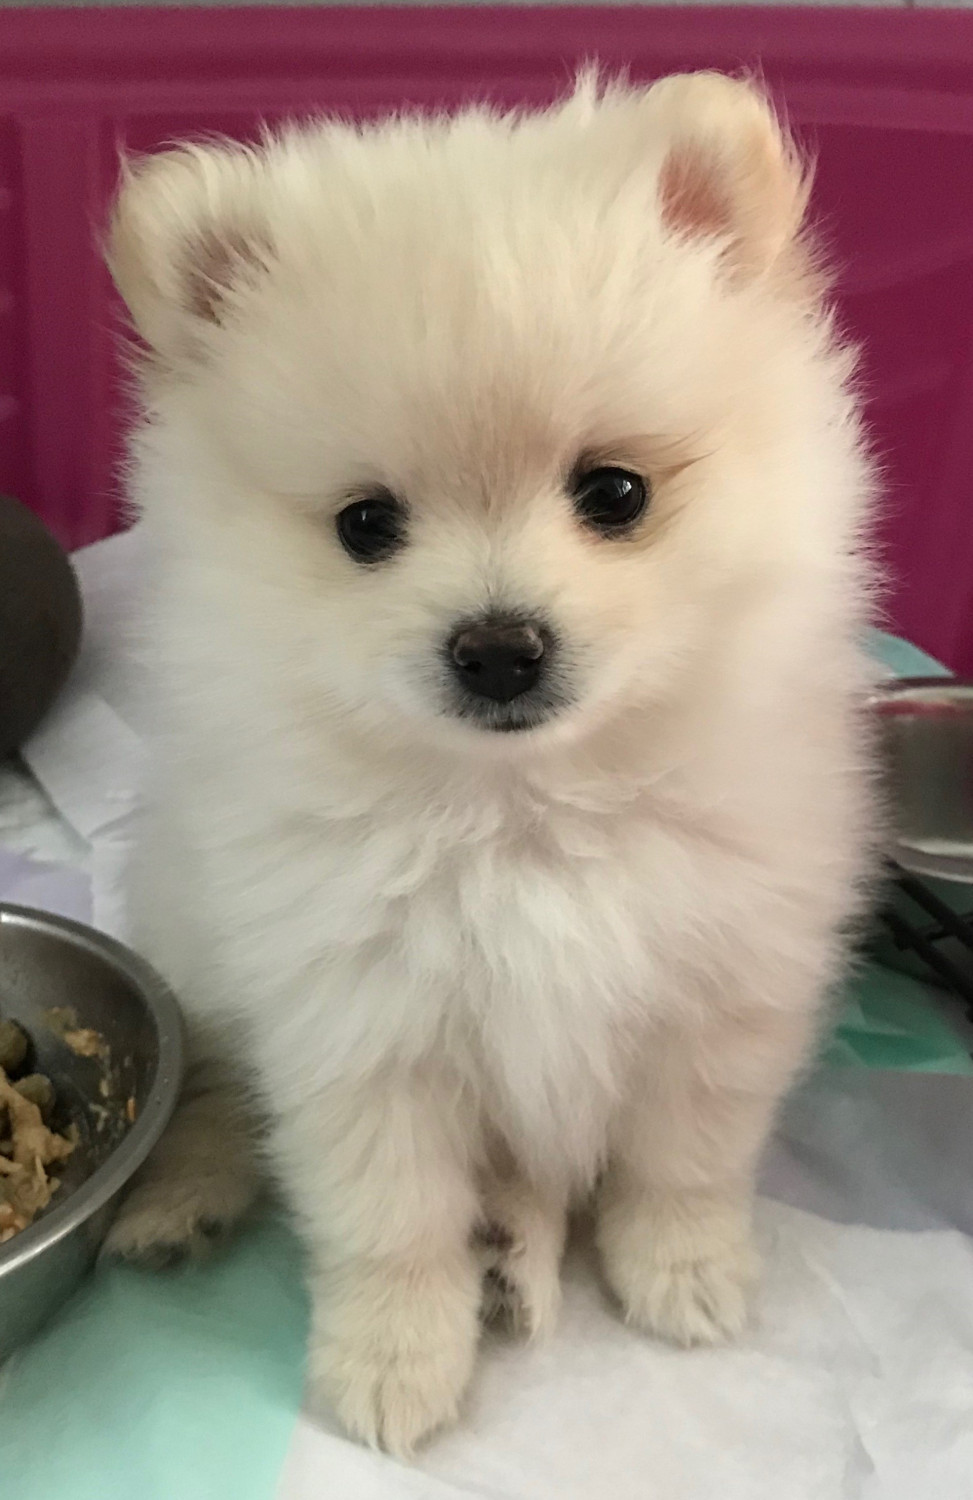 10 Amazing Things about Pomeranian Dogs - Pomeranian Facts |Pom Puppies